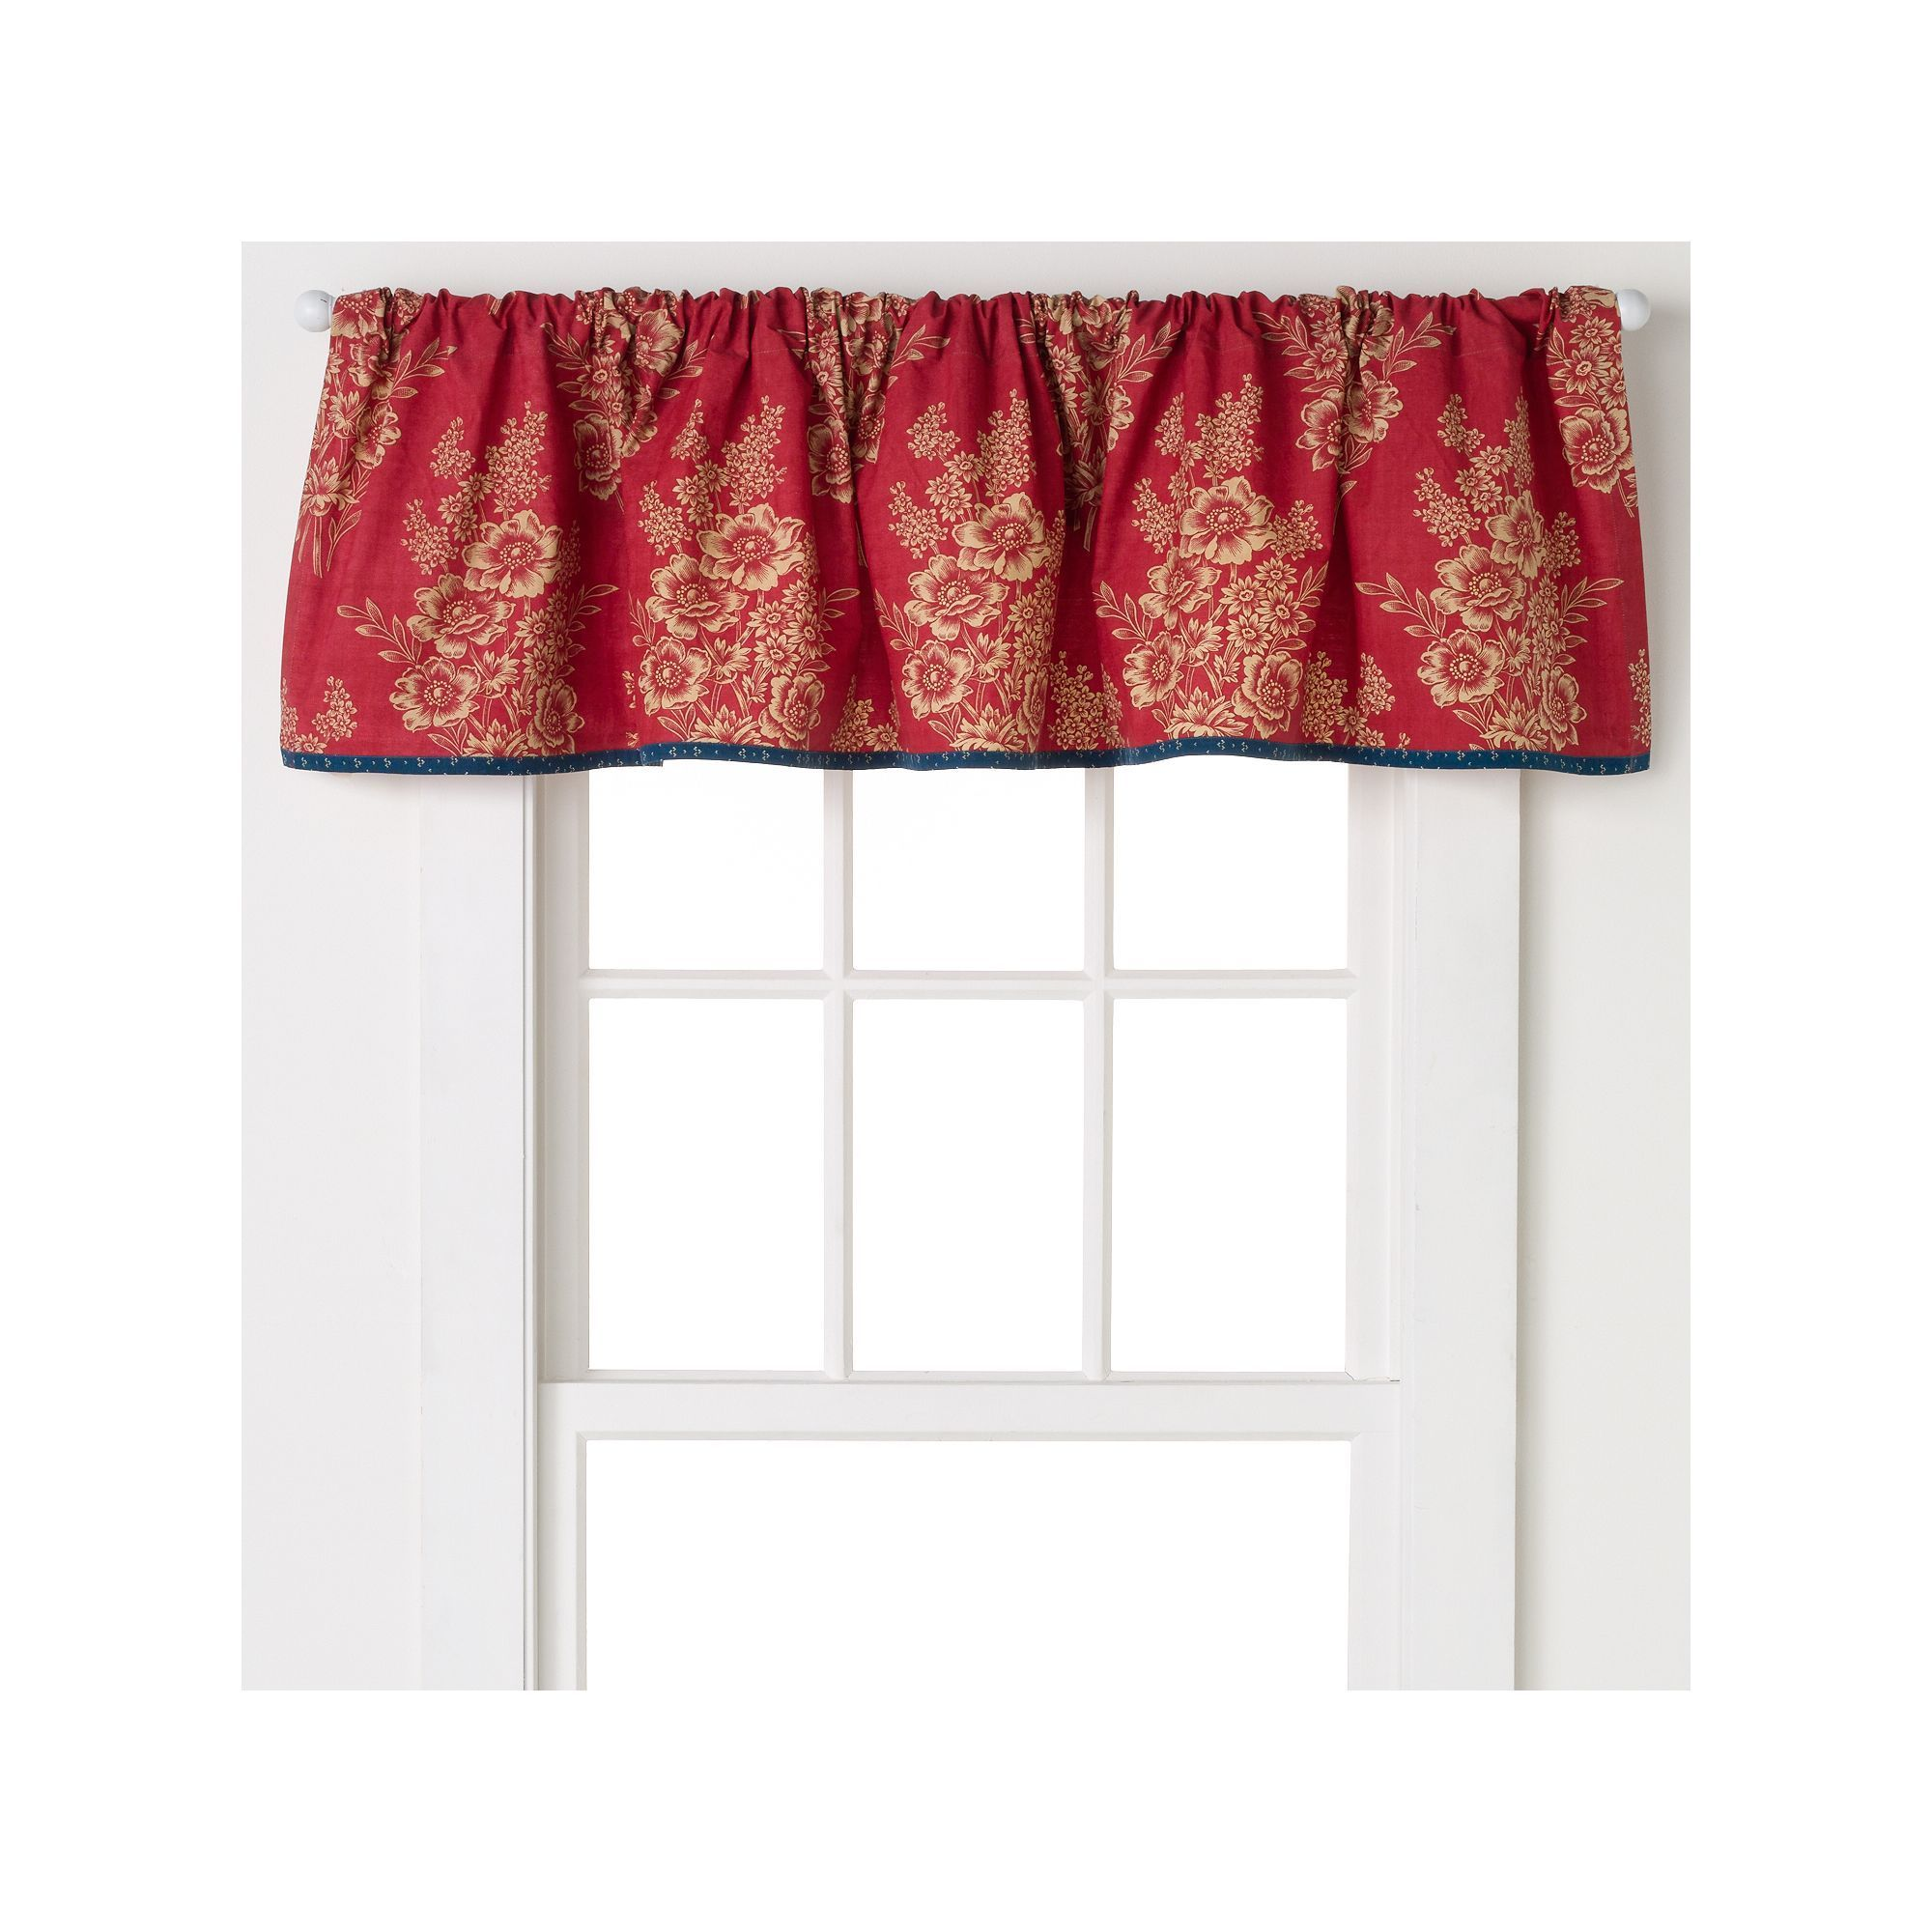 lace pottery valances steel valance barn lanterns from mantle pin newfie etsy scottish used